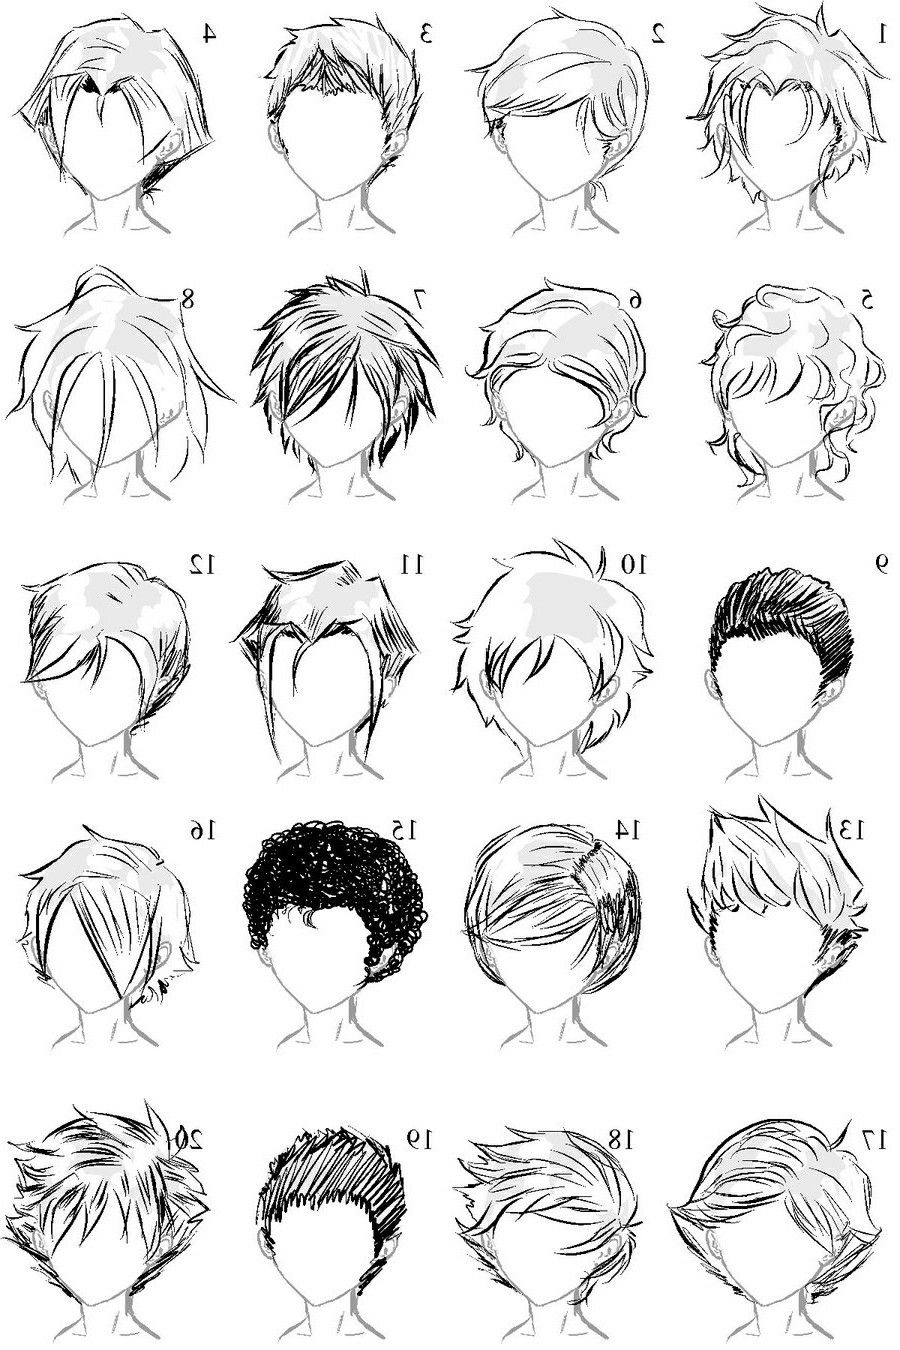 Anime Boy Hairstyles *NOT MINE* Manga hair, Sketches